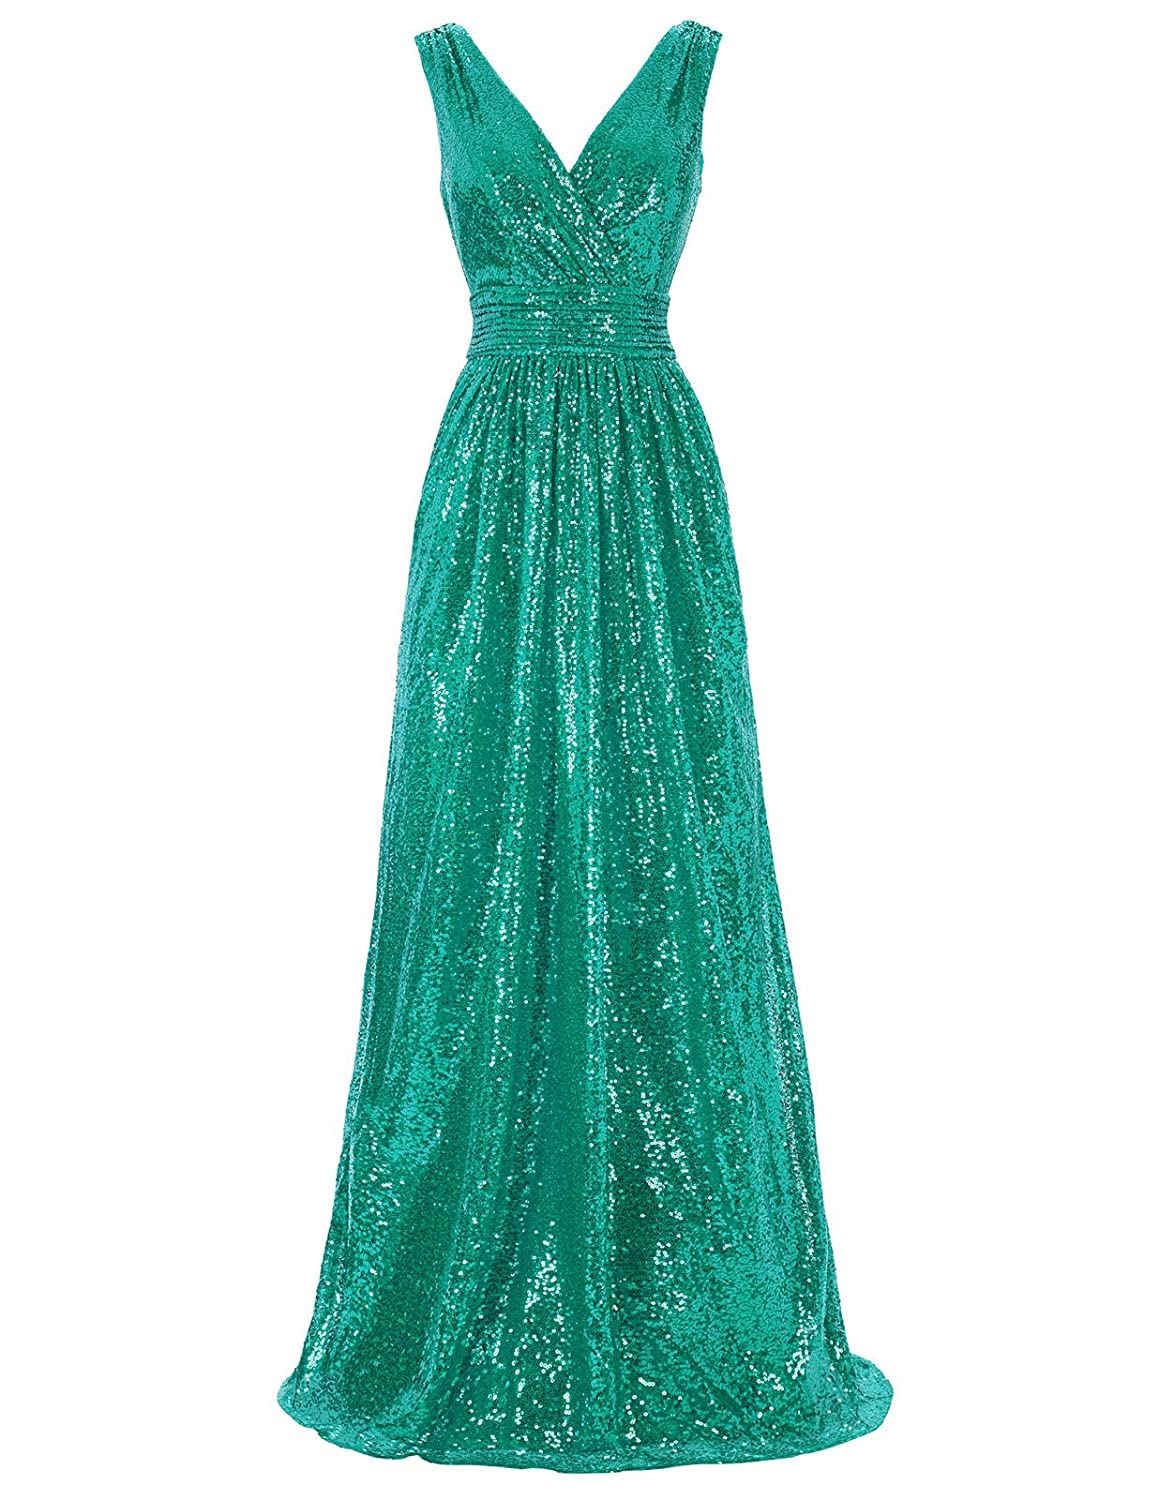 1950s History of Prom, Party, and Formal Dresses Kate Kasin Women Sequin Bridesmaid Dress Sleeveless Maxi Evening Prom Dresses $52.99 AT vintagedancer.com